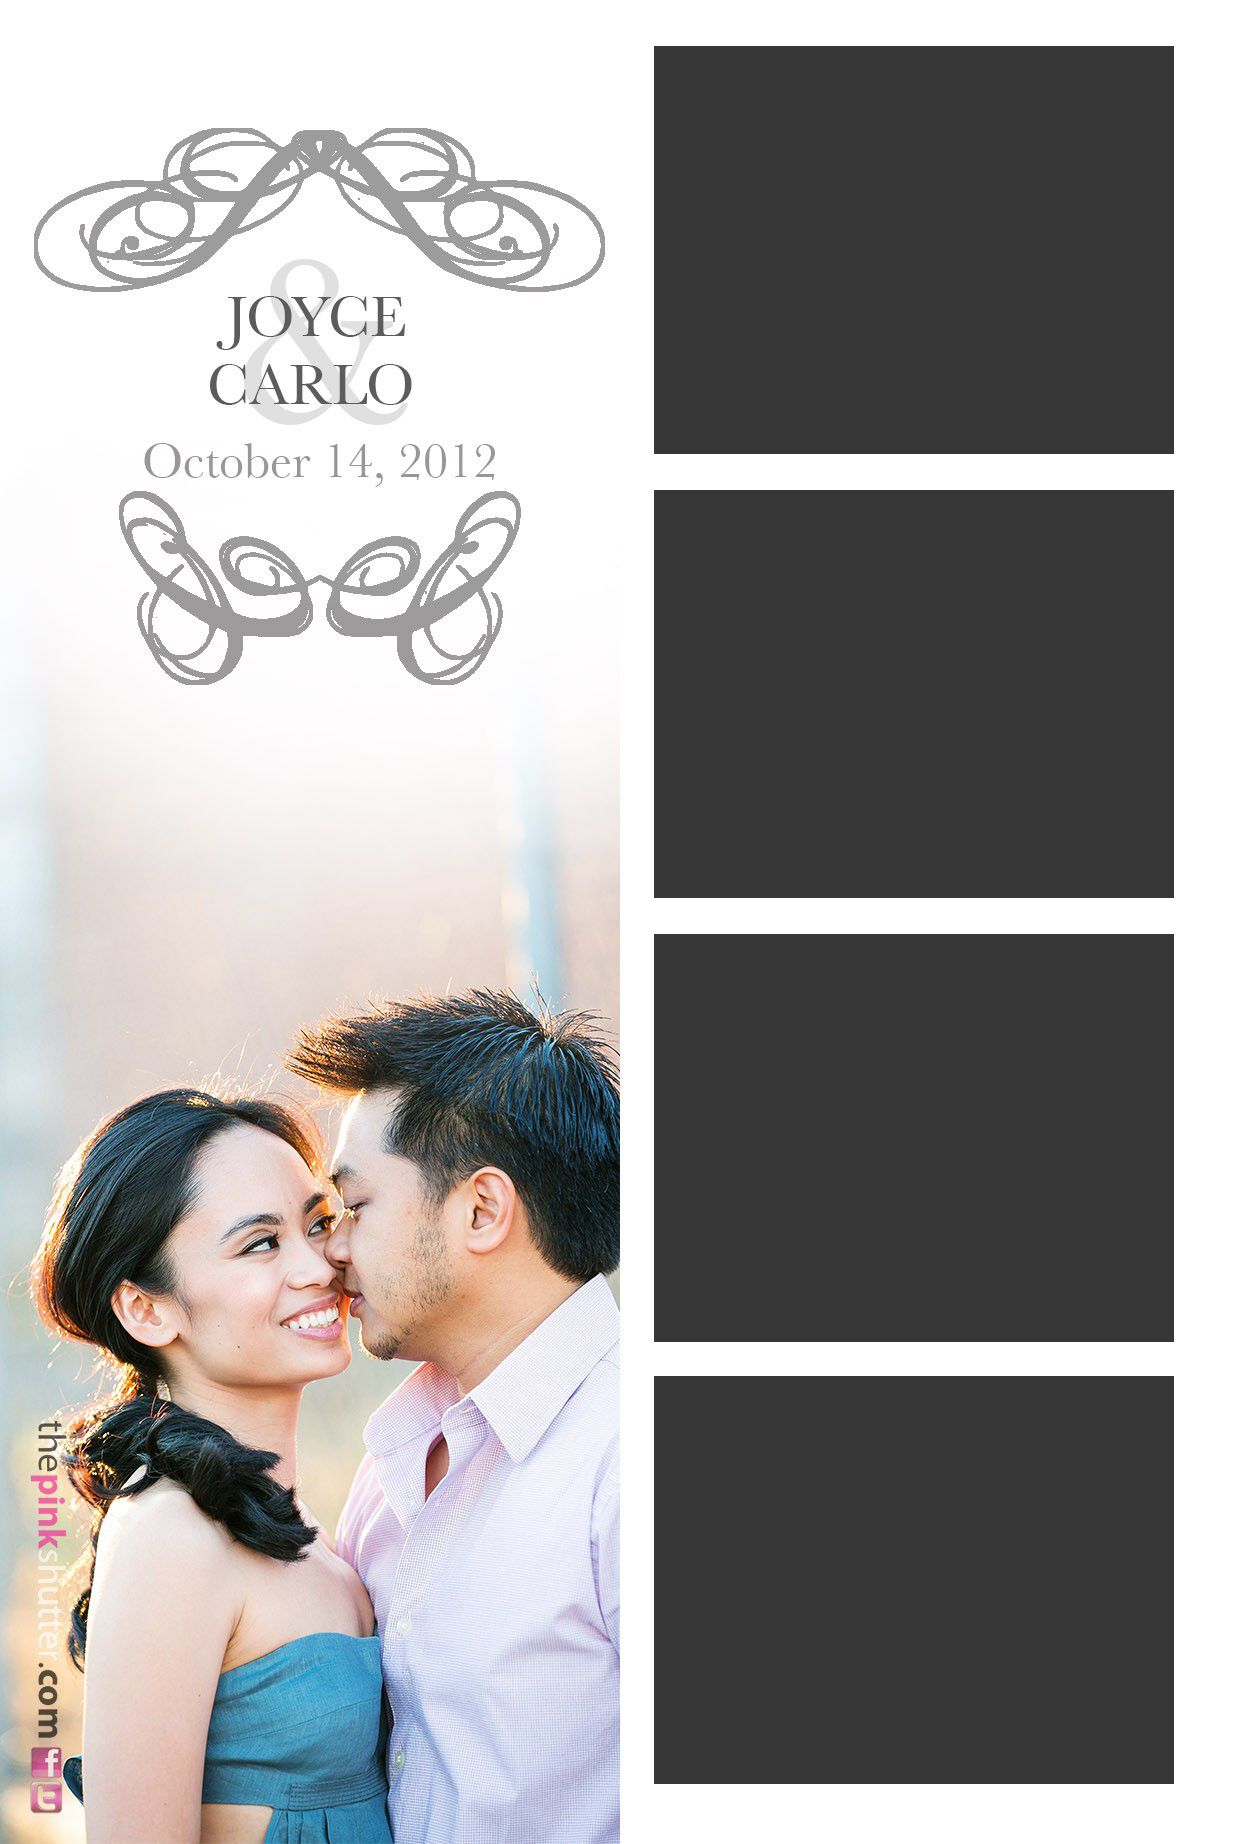 Photo booth layout design google search photo booth ideas debut ideas photo booth layout design google search solutioingenieria Gallery